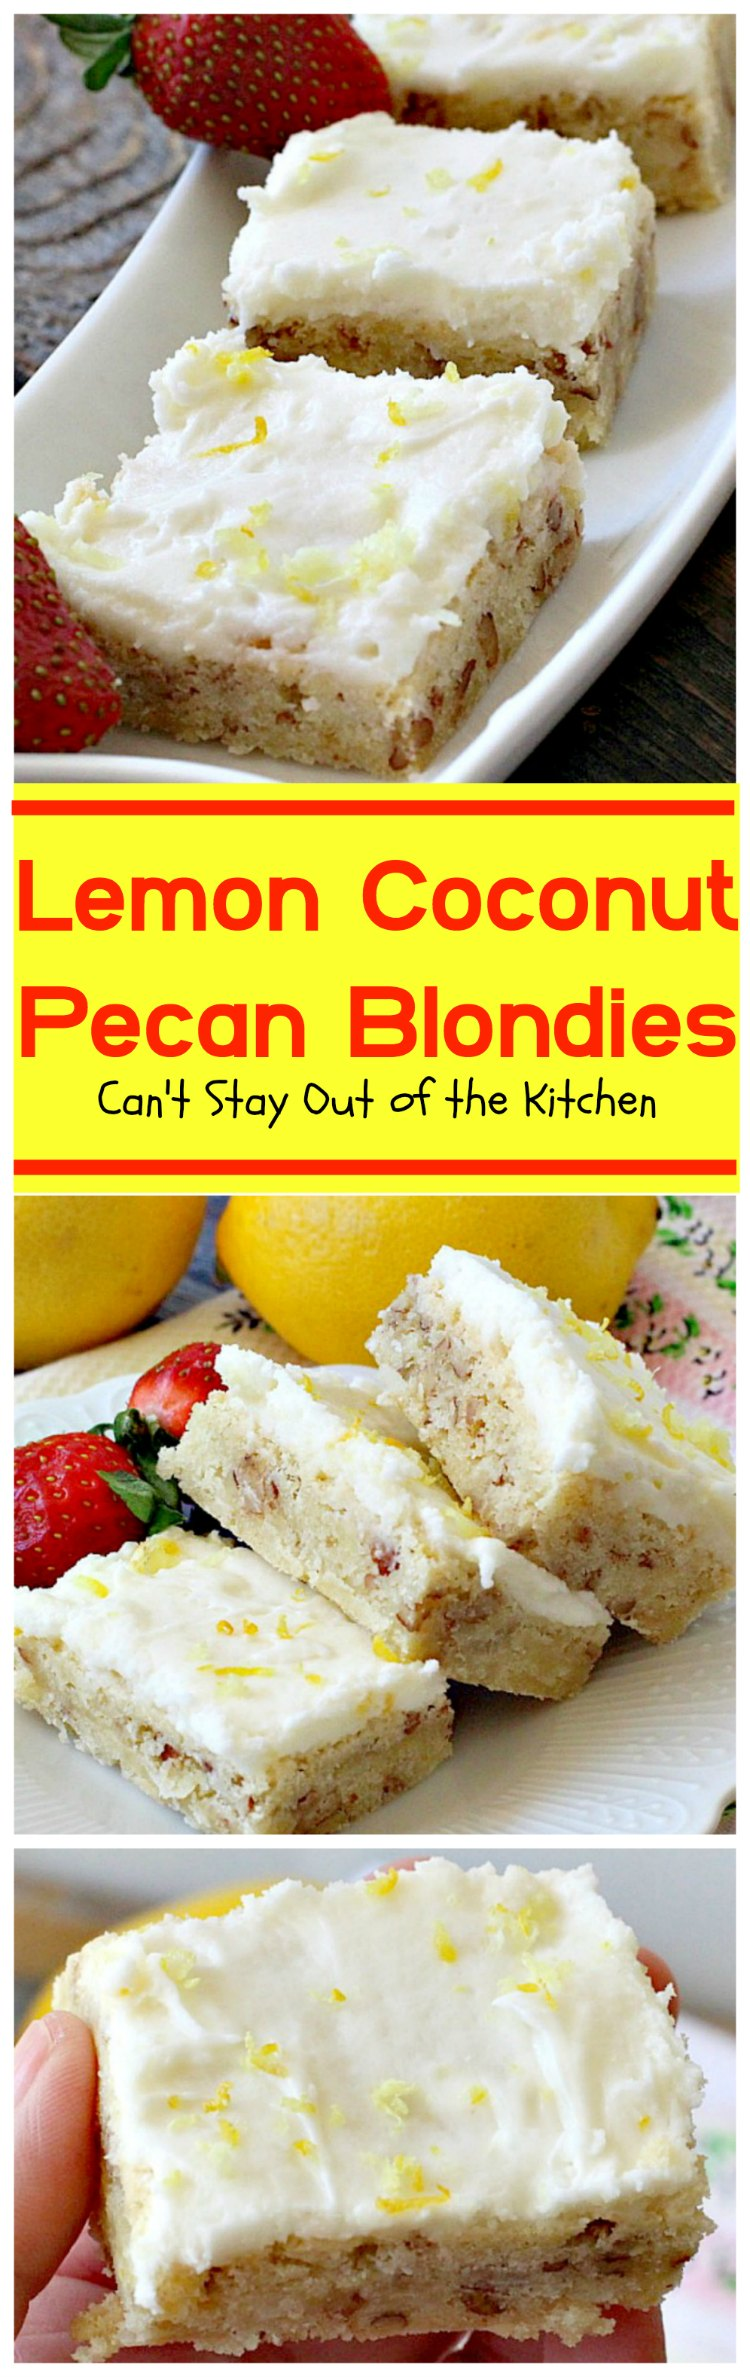 Lemon Coconut Pecan Blondies   Can't Stay Out of the Kitchen